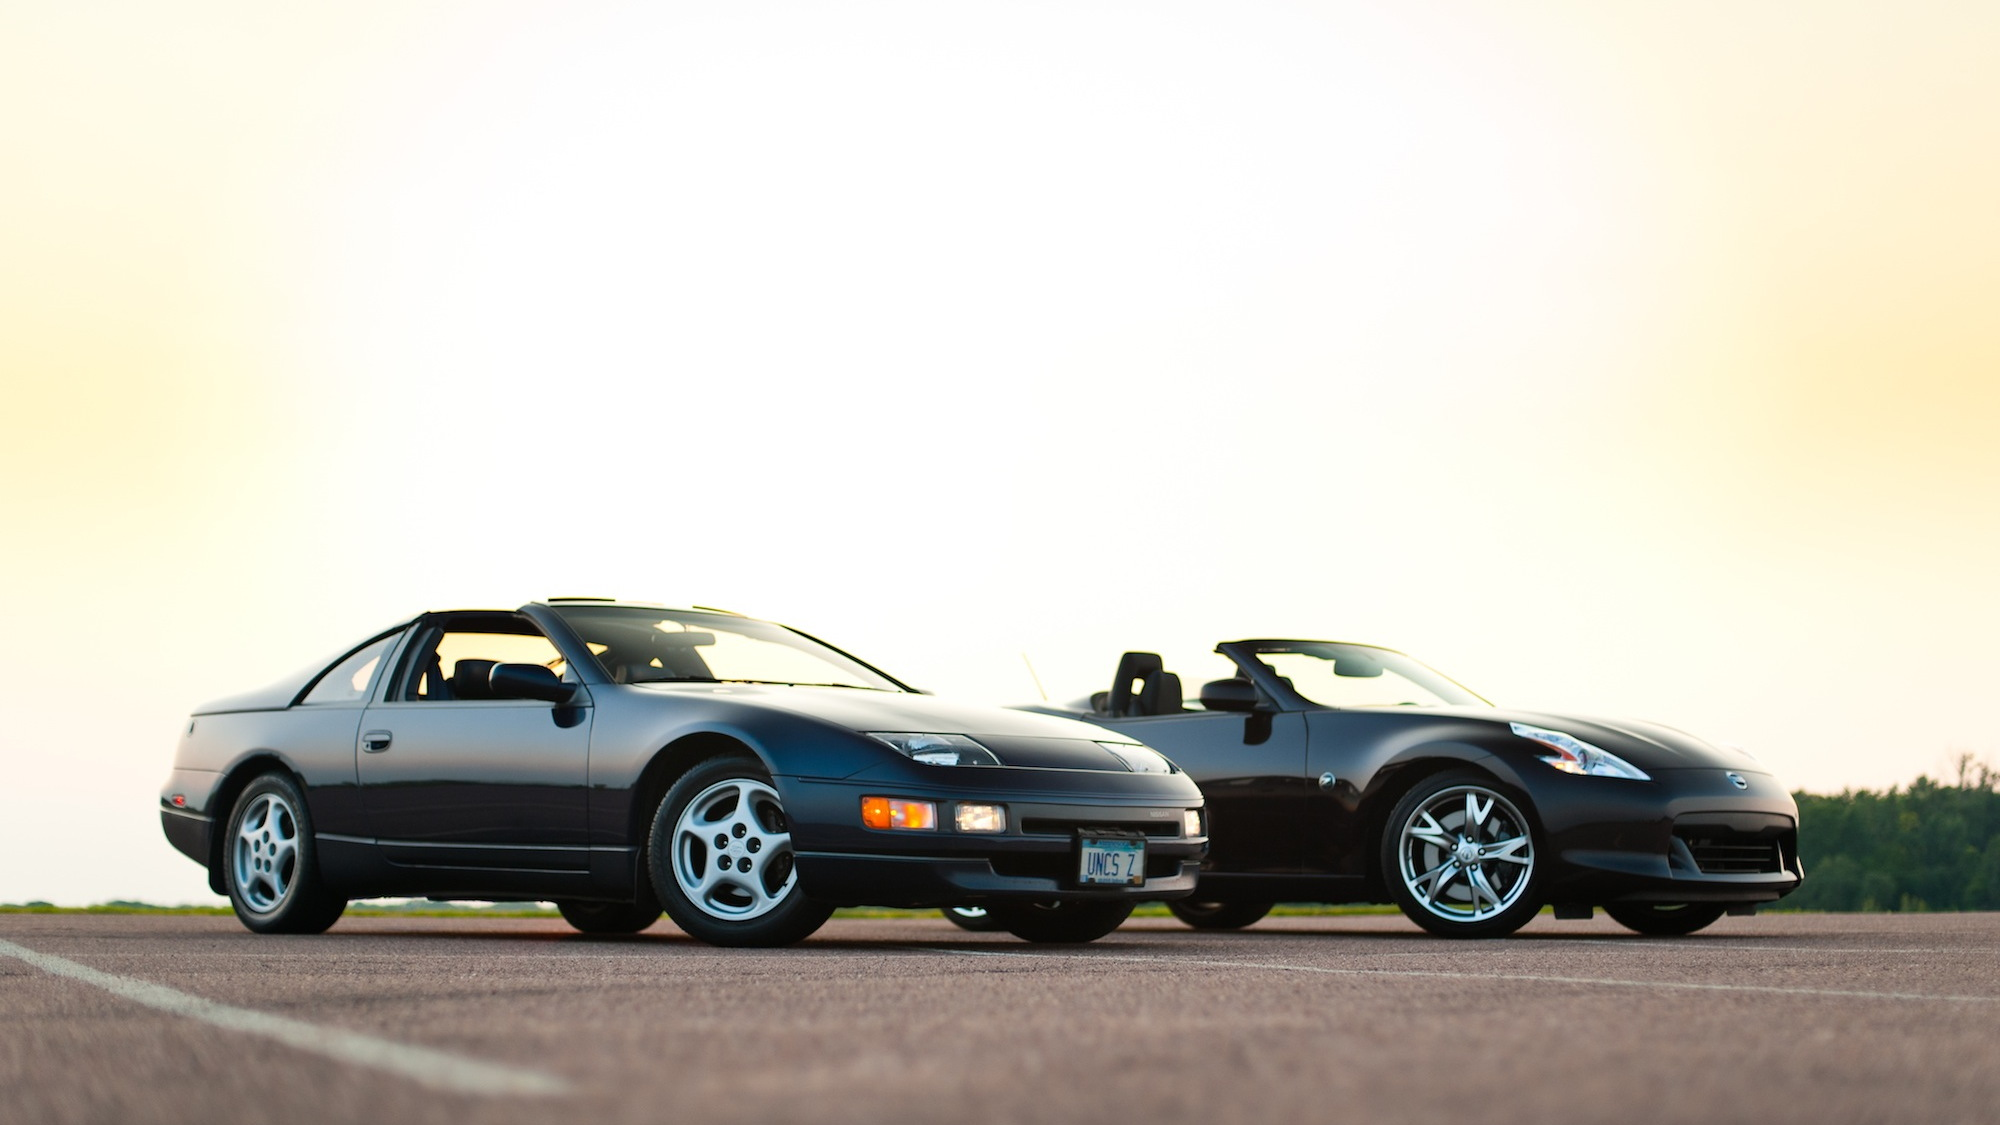 2011 Nissan 370Z And 1990 Nissan 300ZX. Photos by Alex Bellus